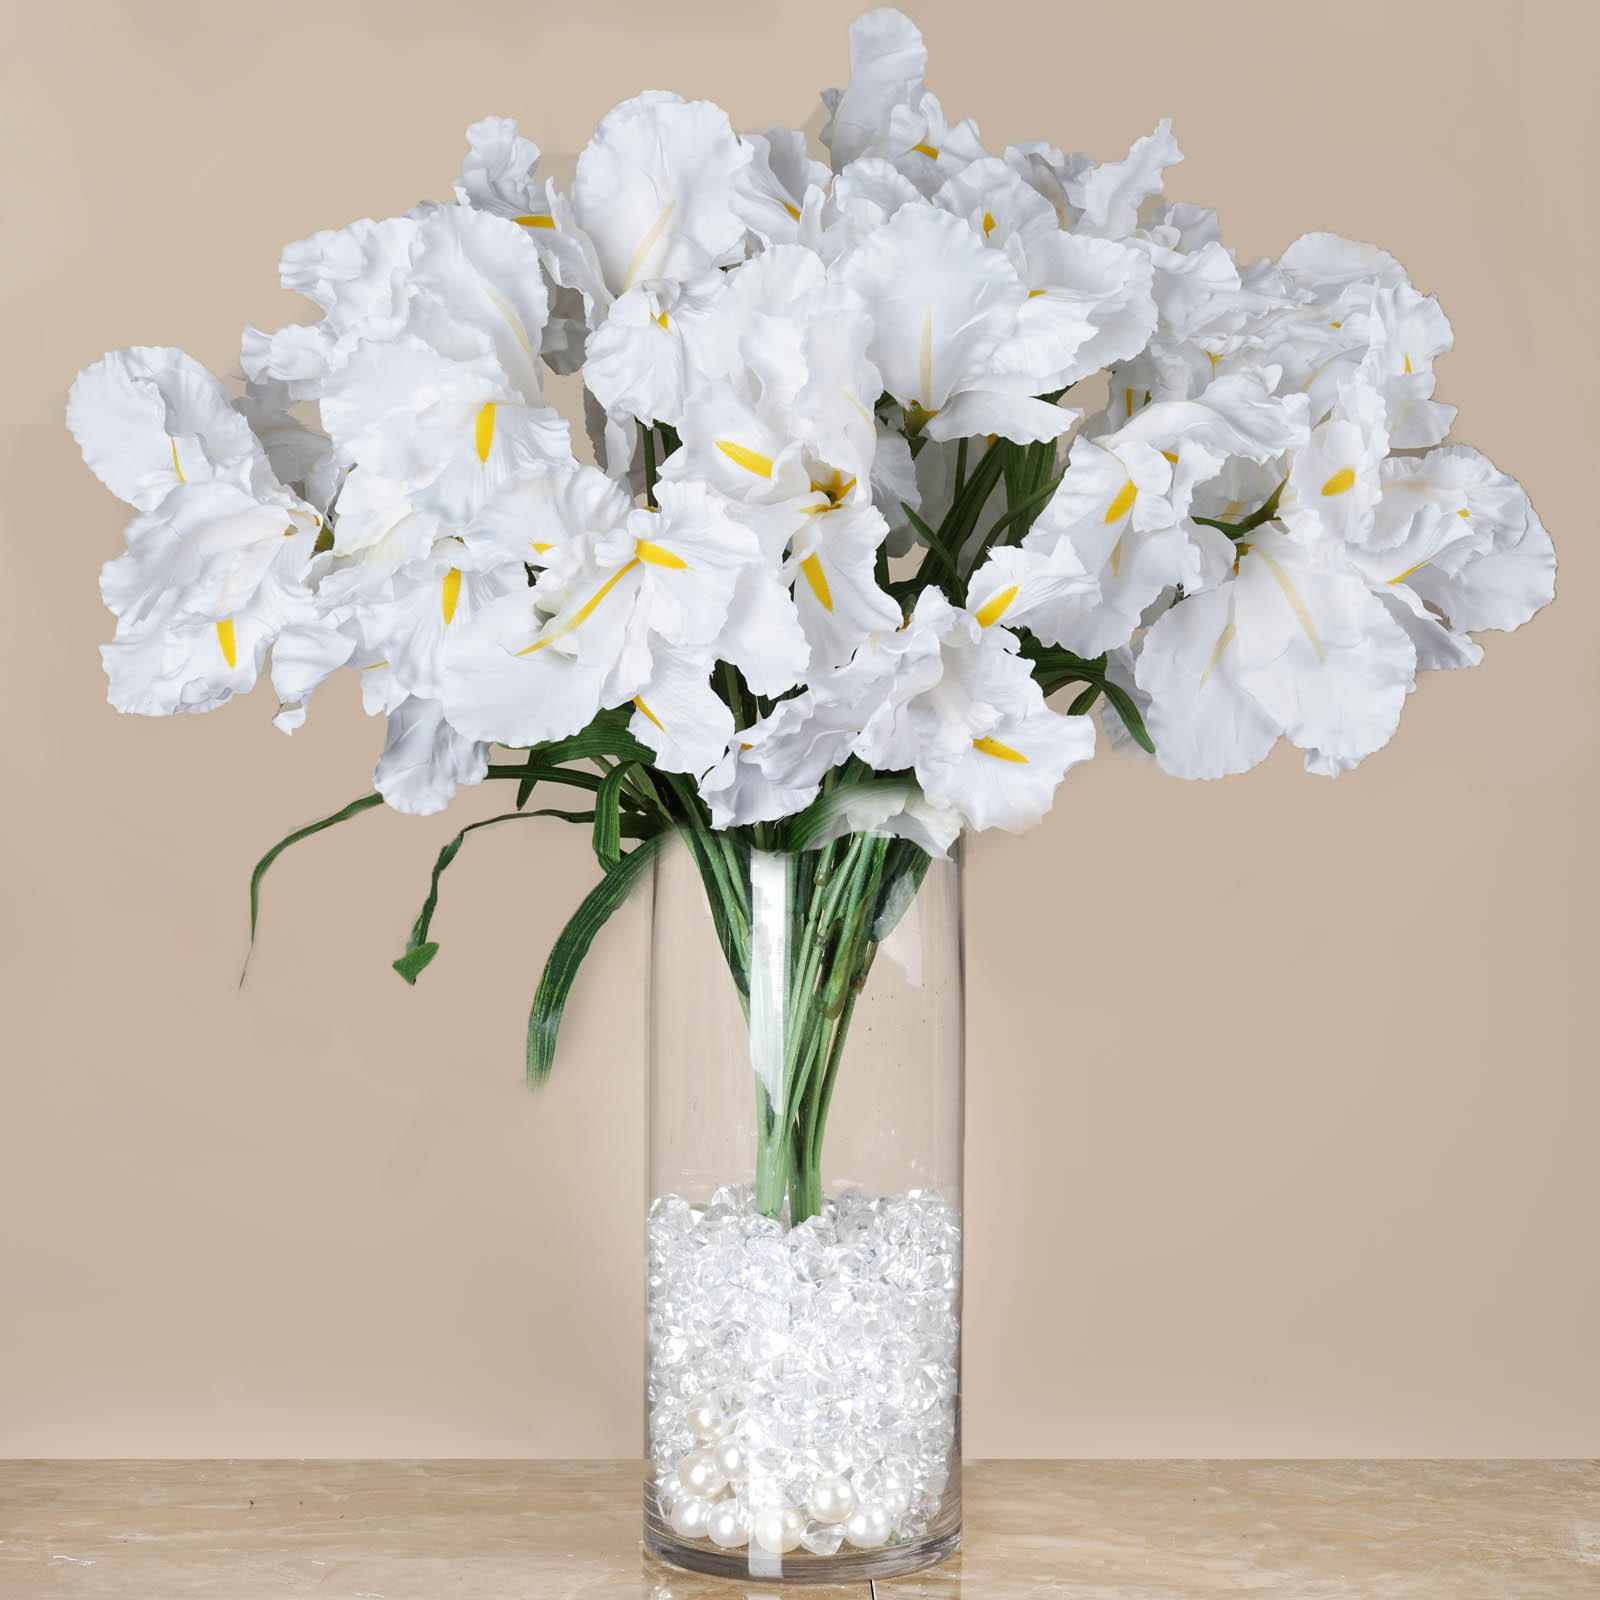 Artificial Flower Wedding Centerpieces: 36 Wedding Party Artificial